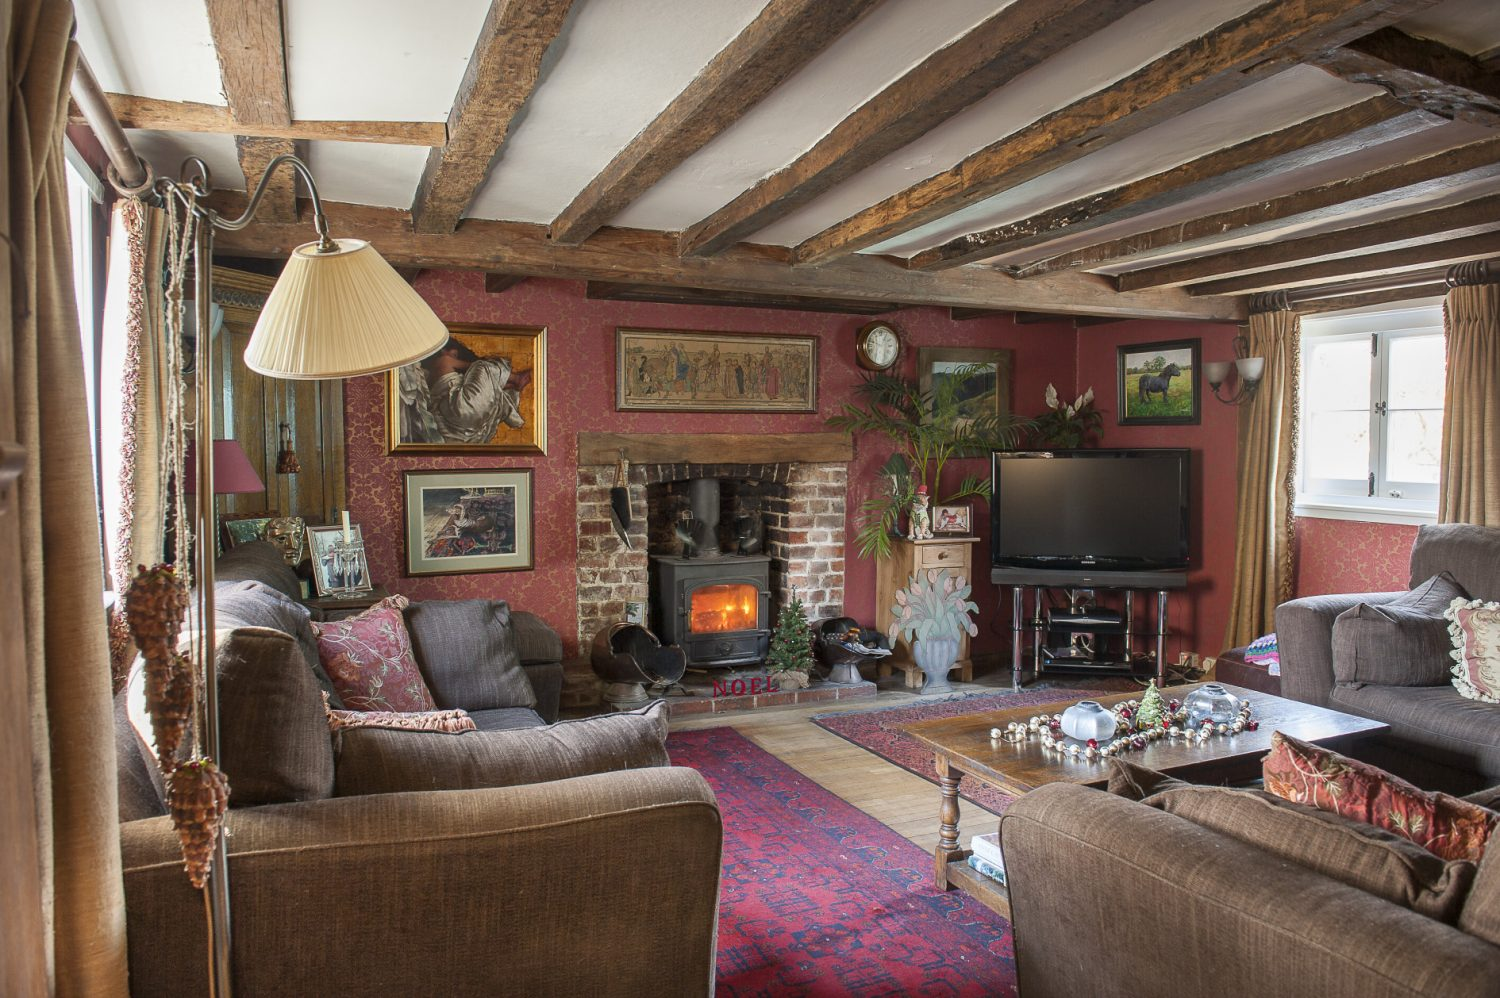 The snug was created as a room for the kids to watch television, while their parents enjoyed quieter time next door in the book room